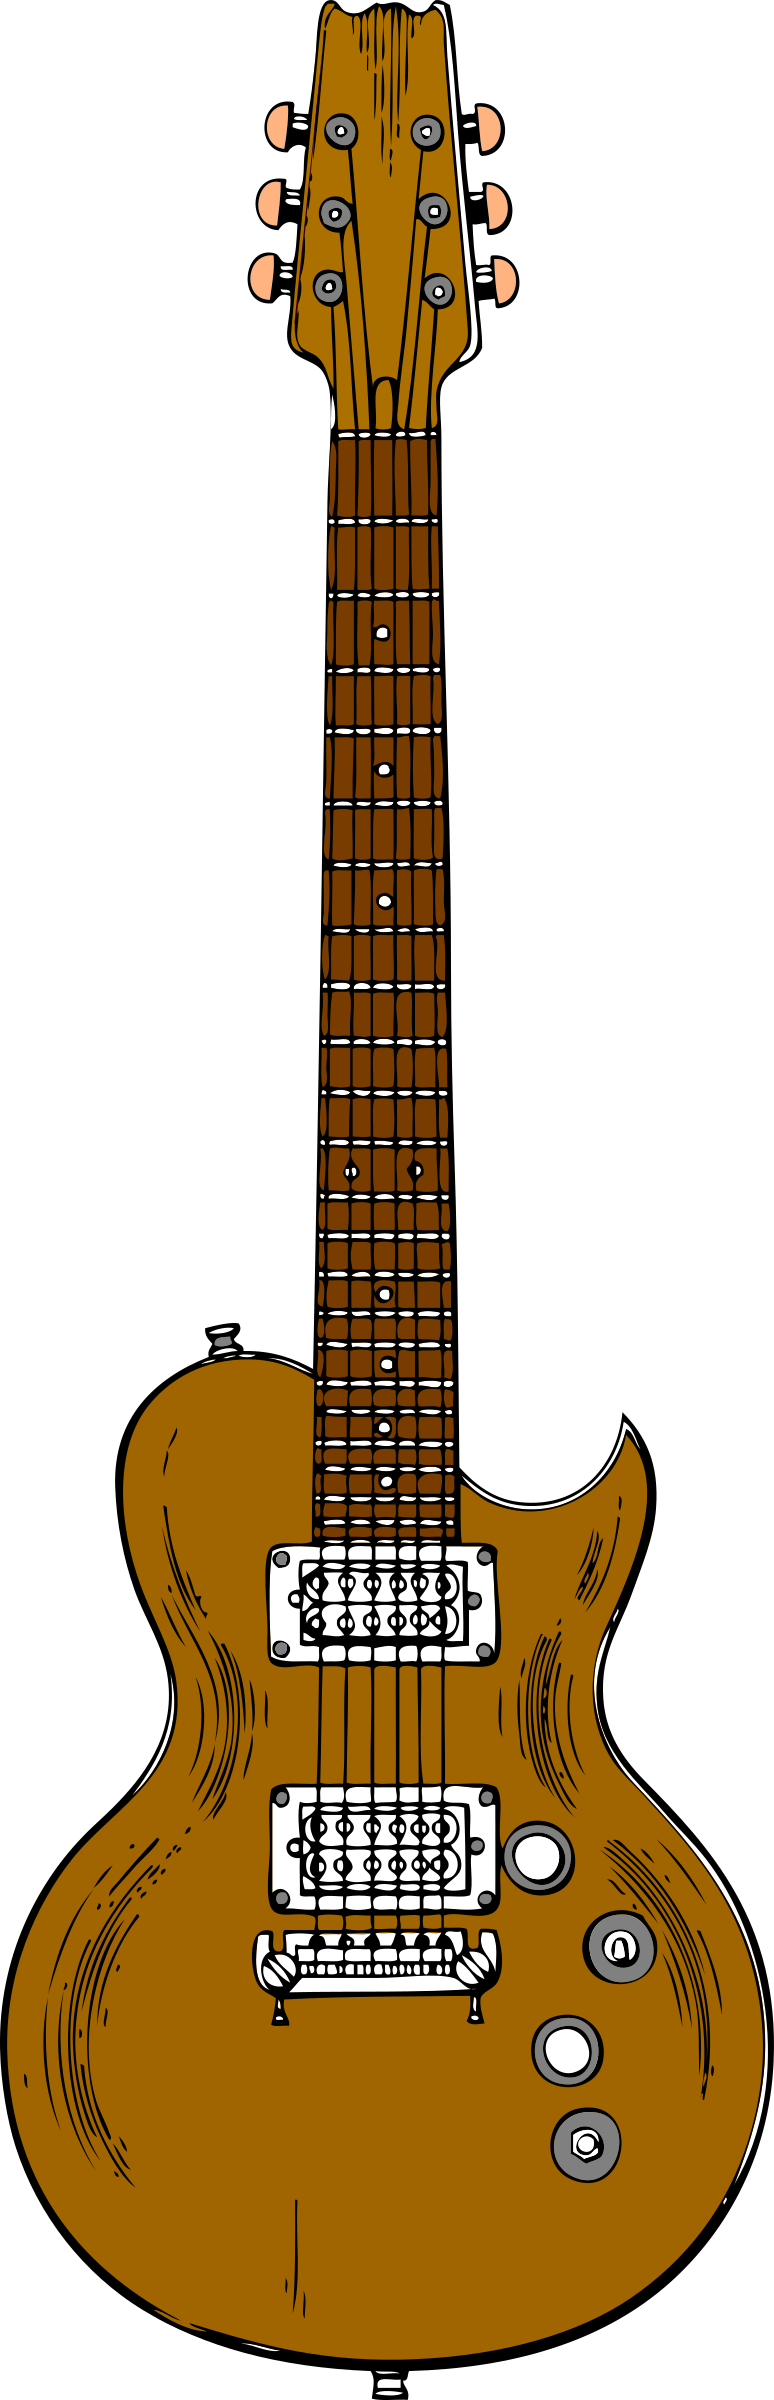 Wooden Guitar by tom